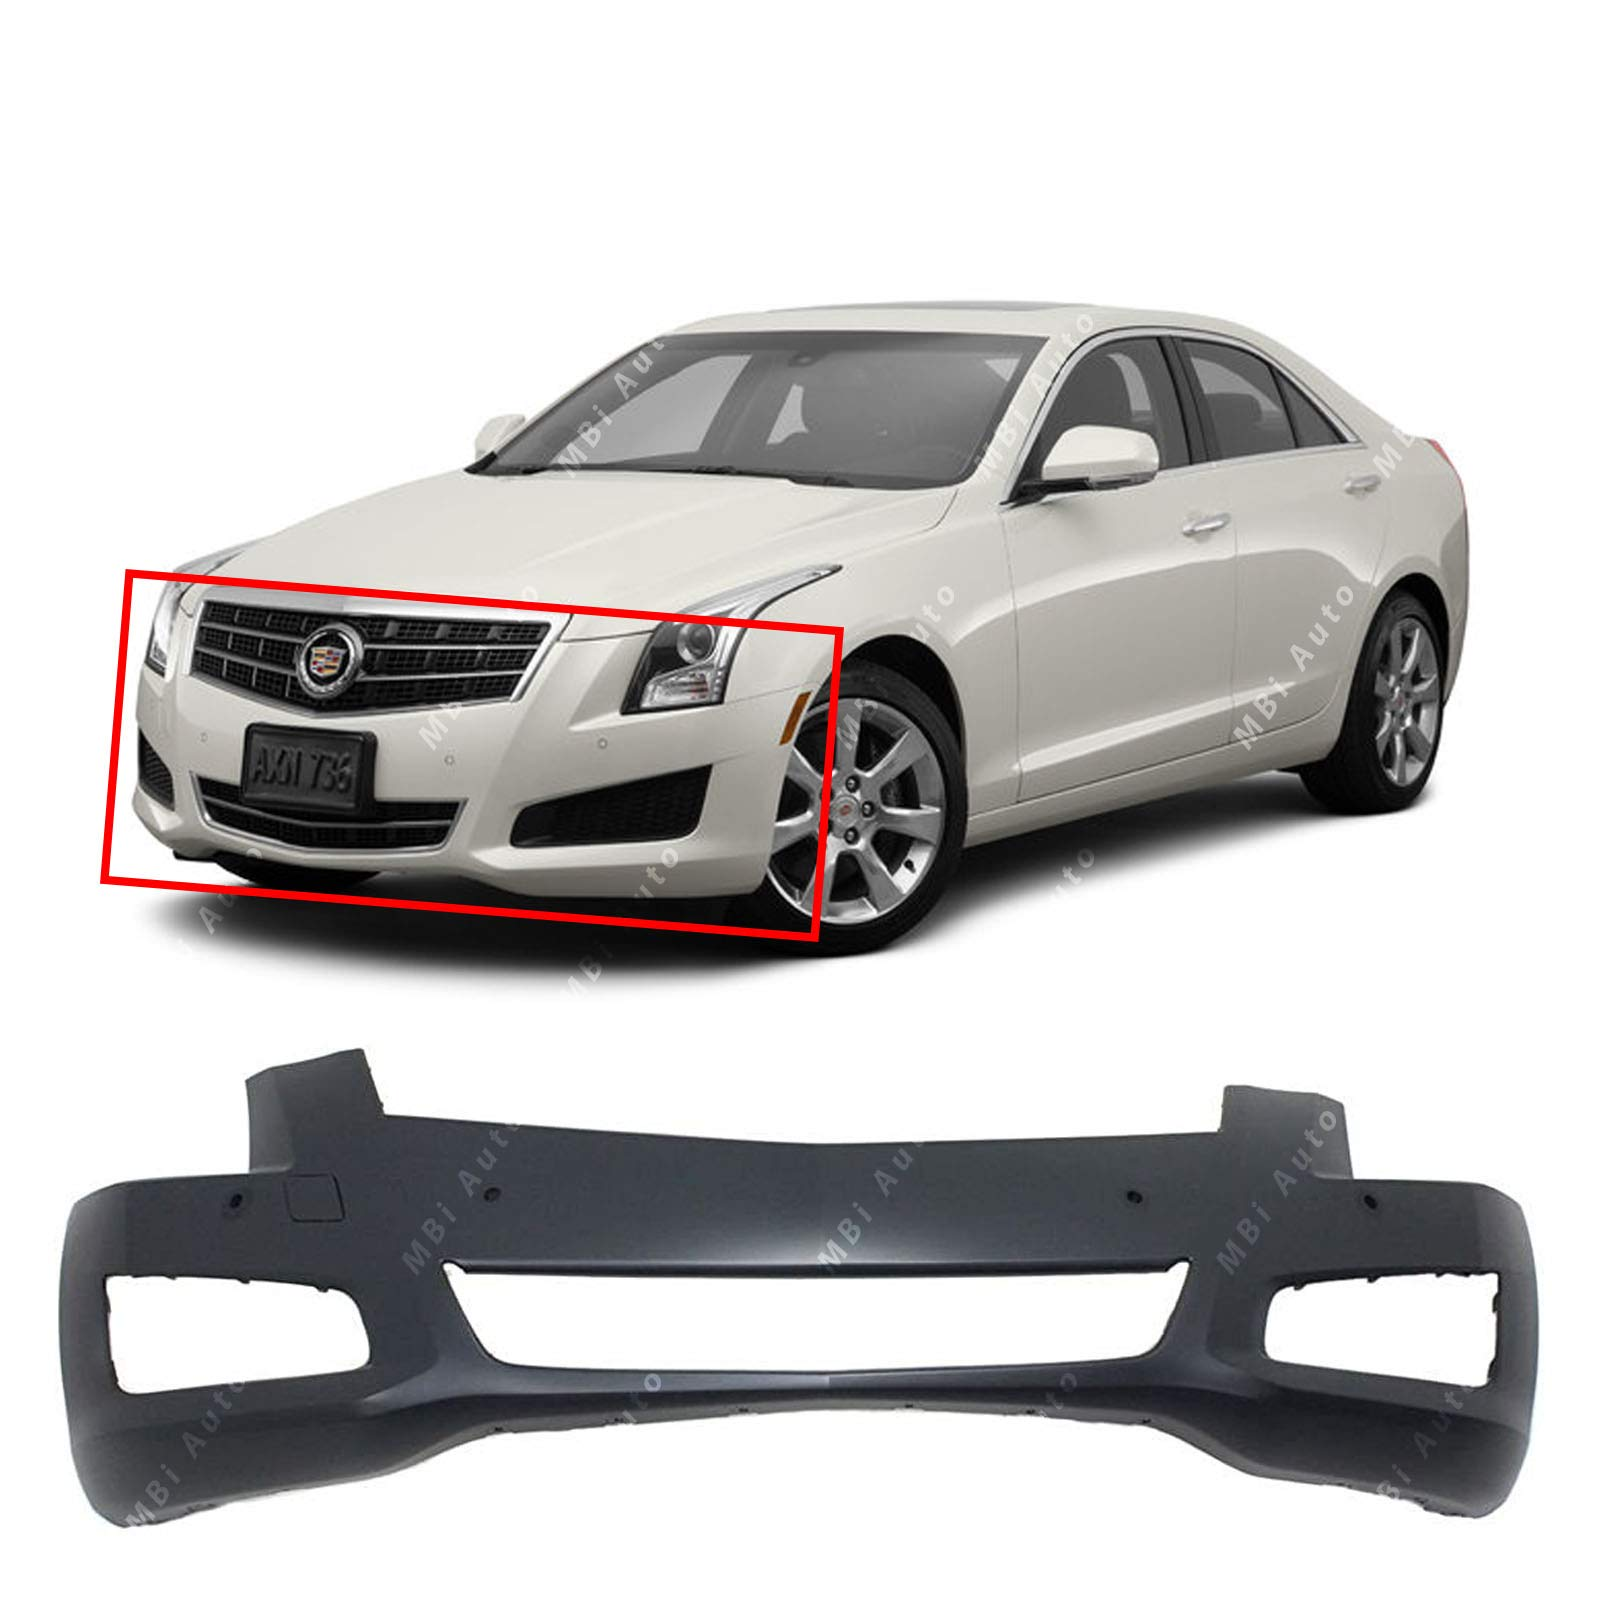 Rear Bumper Cover Replacement for 2007 2008 Nissan Maxima 07 08 NEW Primered